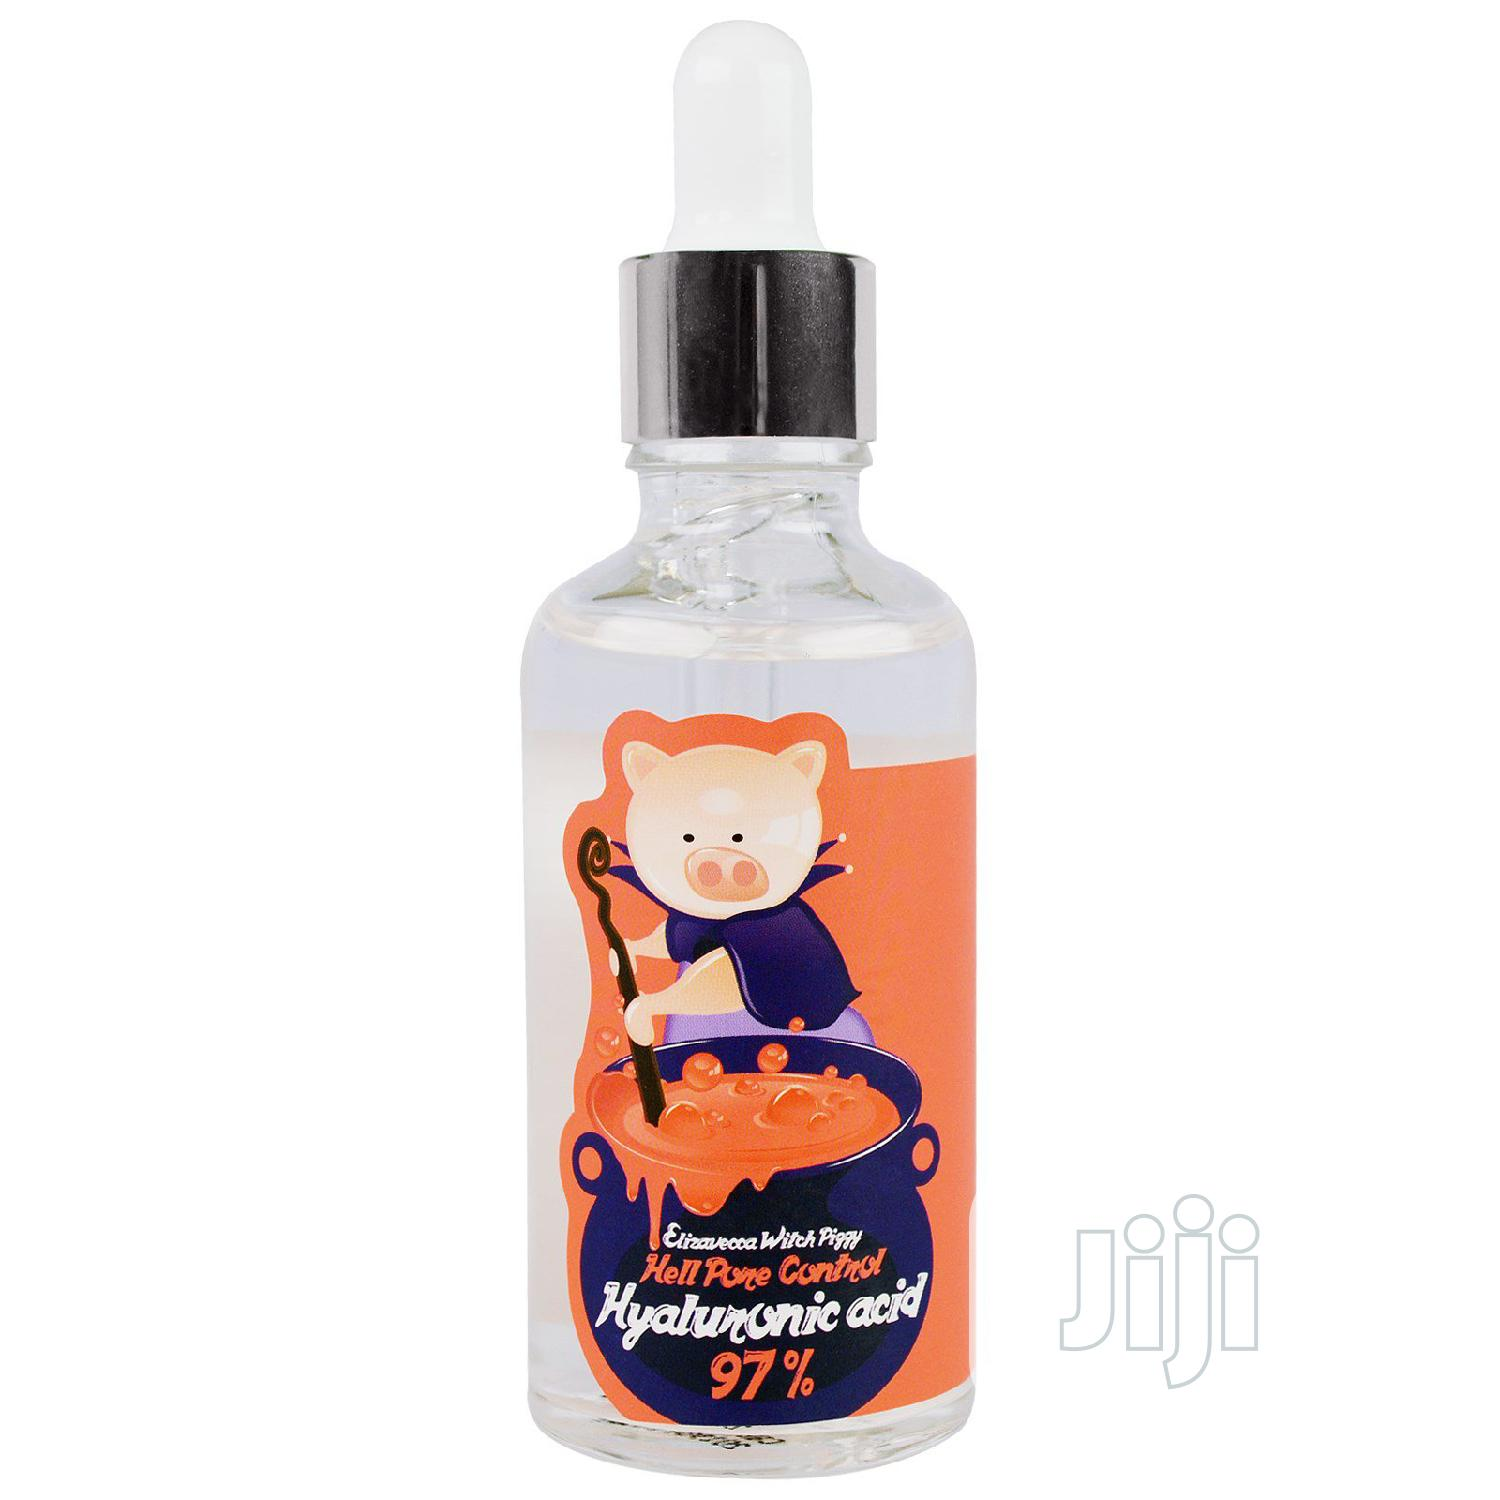 Elizavecca Witch Piggy Hell Pore Control Hyaluronic Acid 97%,50ml